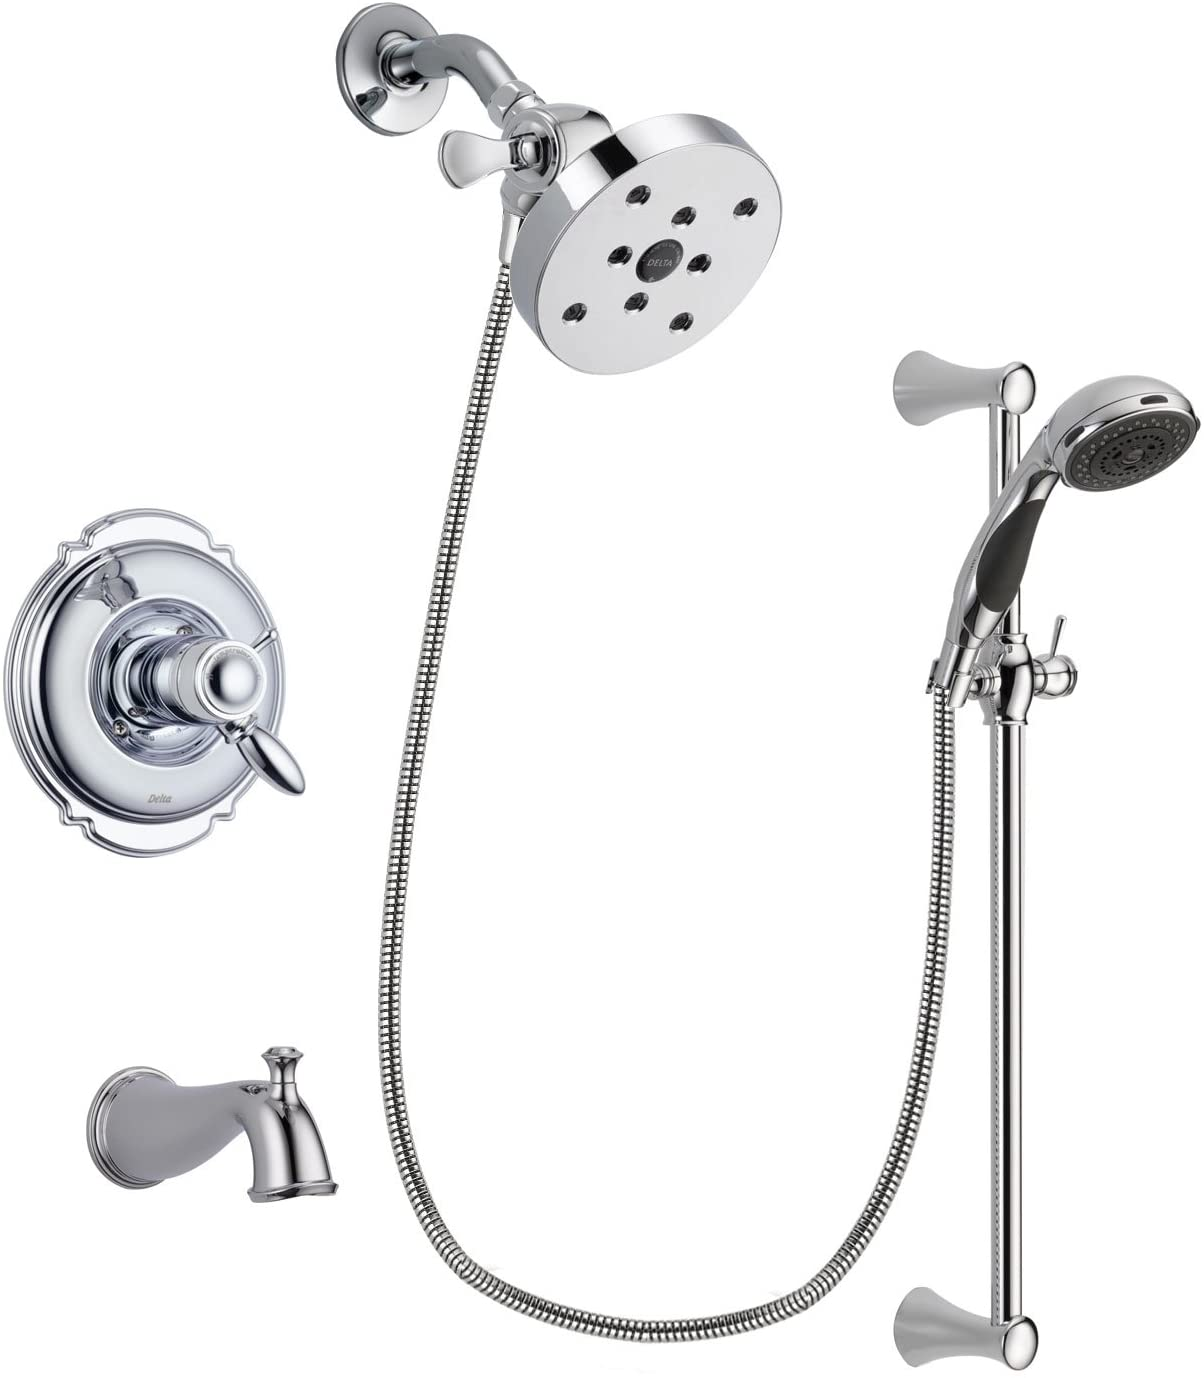 Delta Victorian Chrome Thermostatic Tub and Shower Faucet System with 5-1/2 inch Shower Head and 5-Spray Slide Bar with Personal Handheld Shower Includes Rough-in Valve and Tub Spout DSP0801V